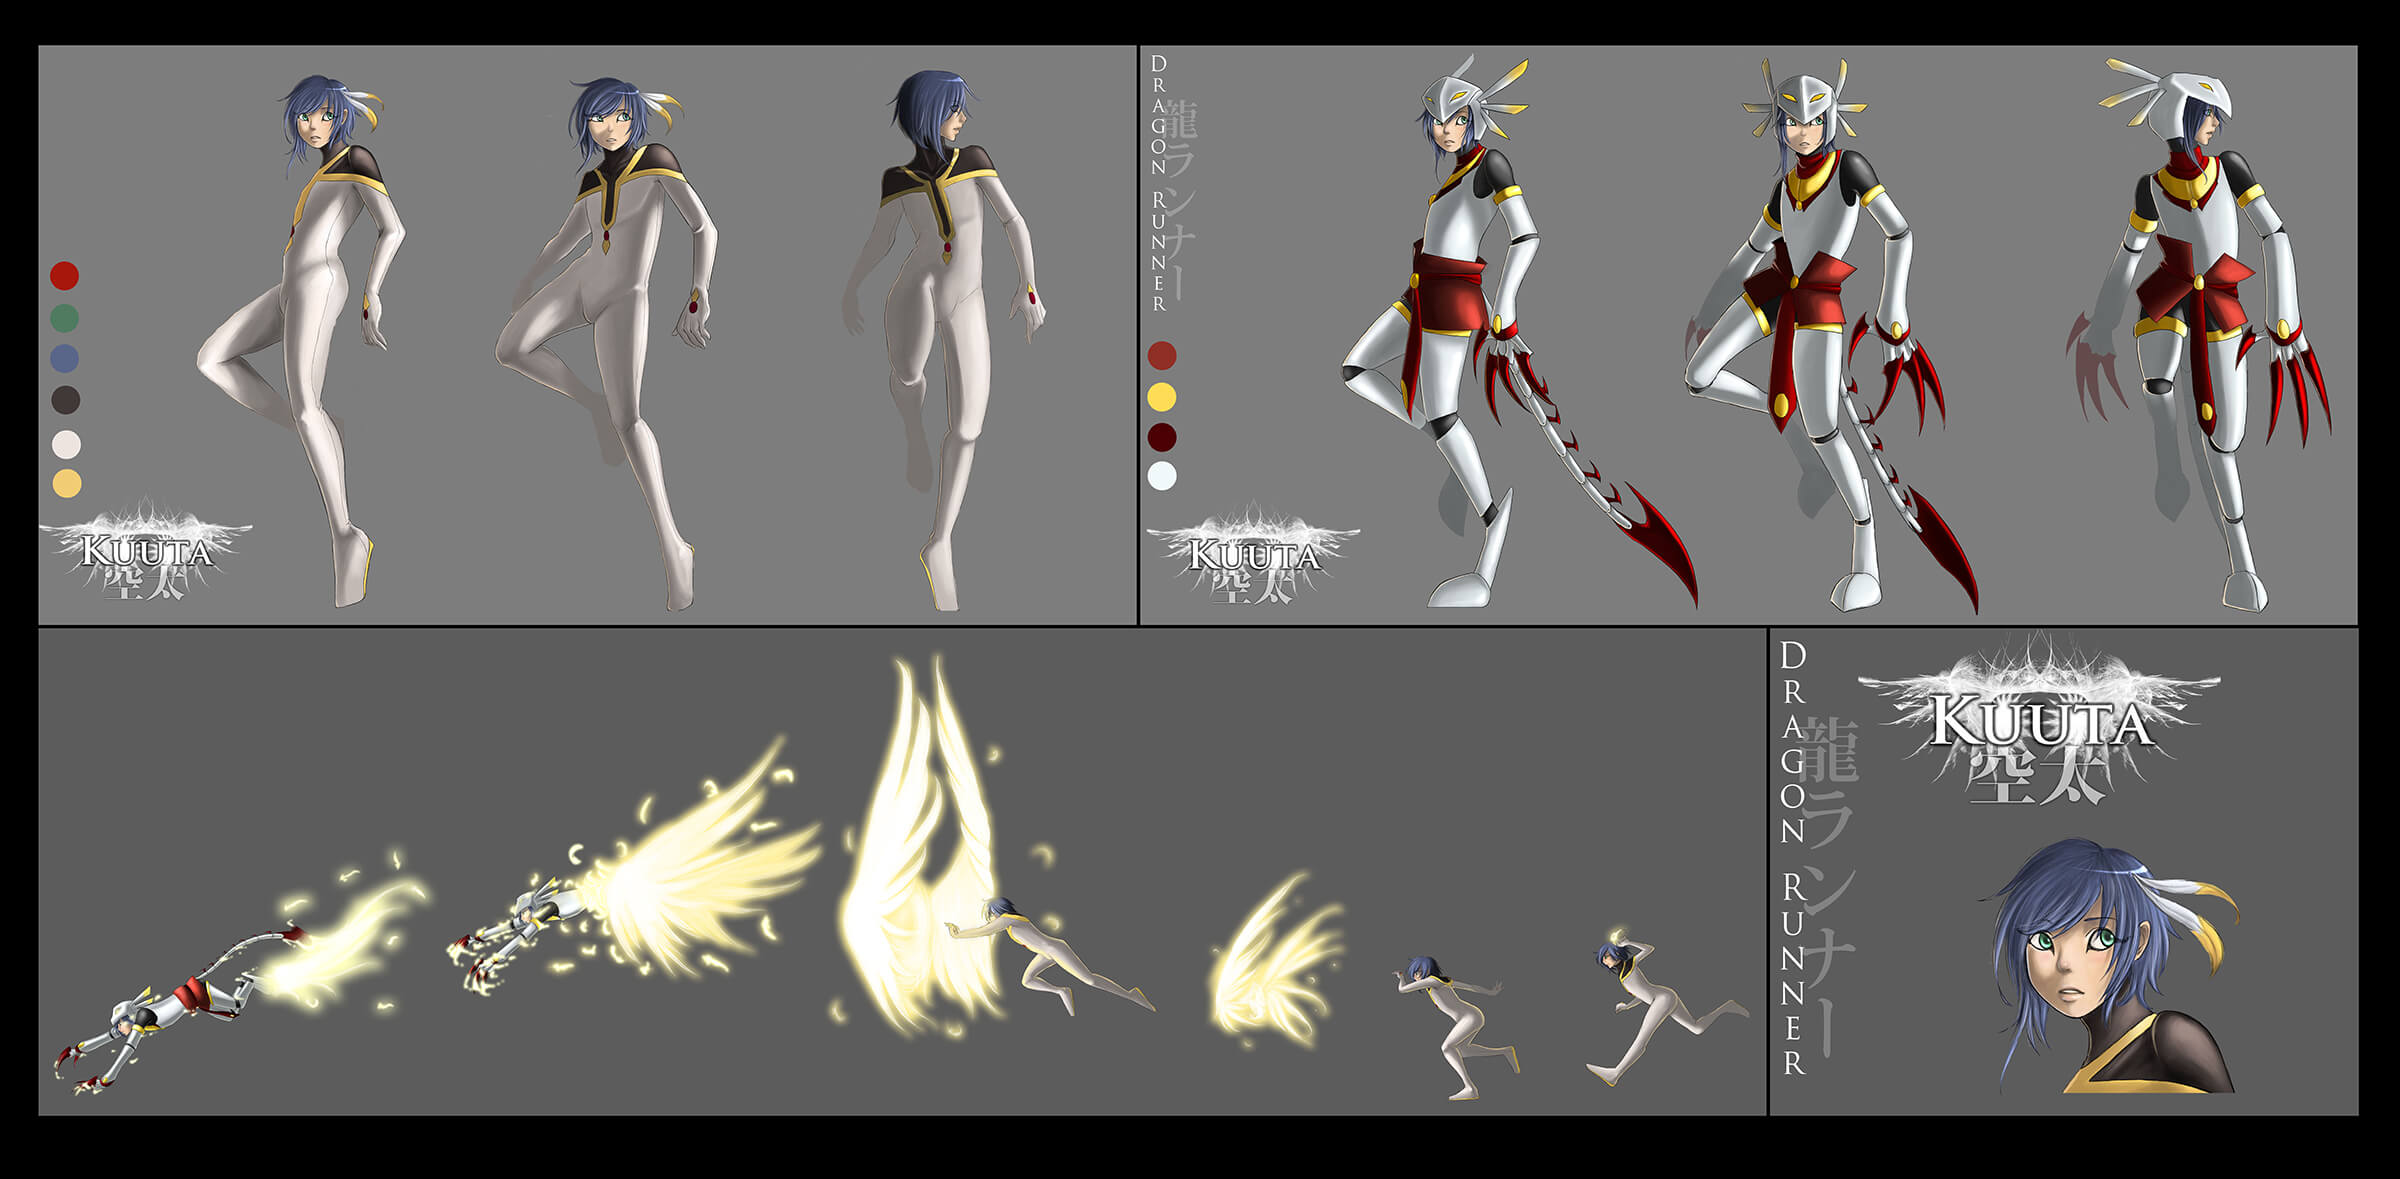 Character and movement sketches of a woman in a white-black-and-red skinsuit as she transforms into a cat-like hero.